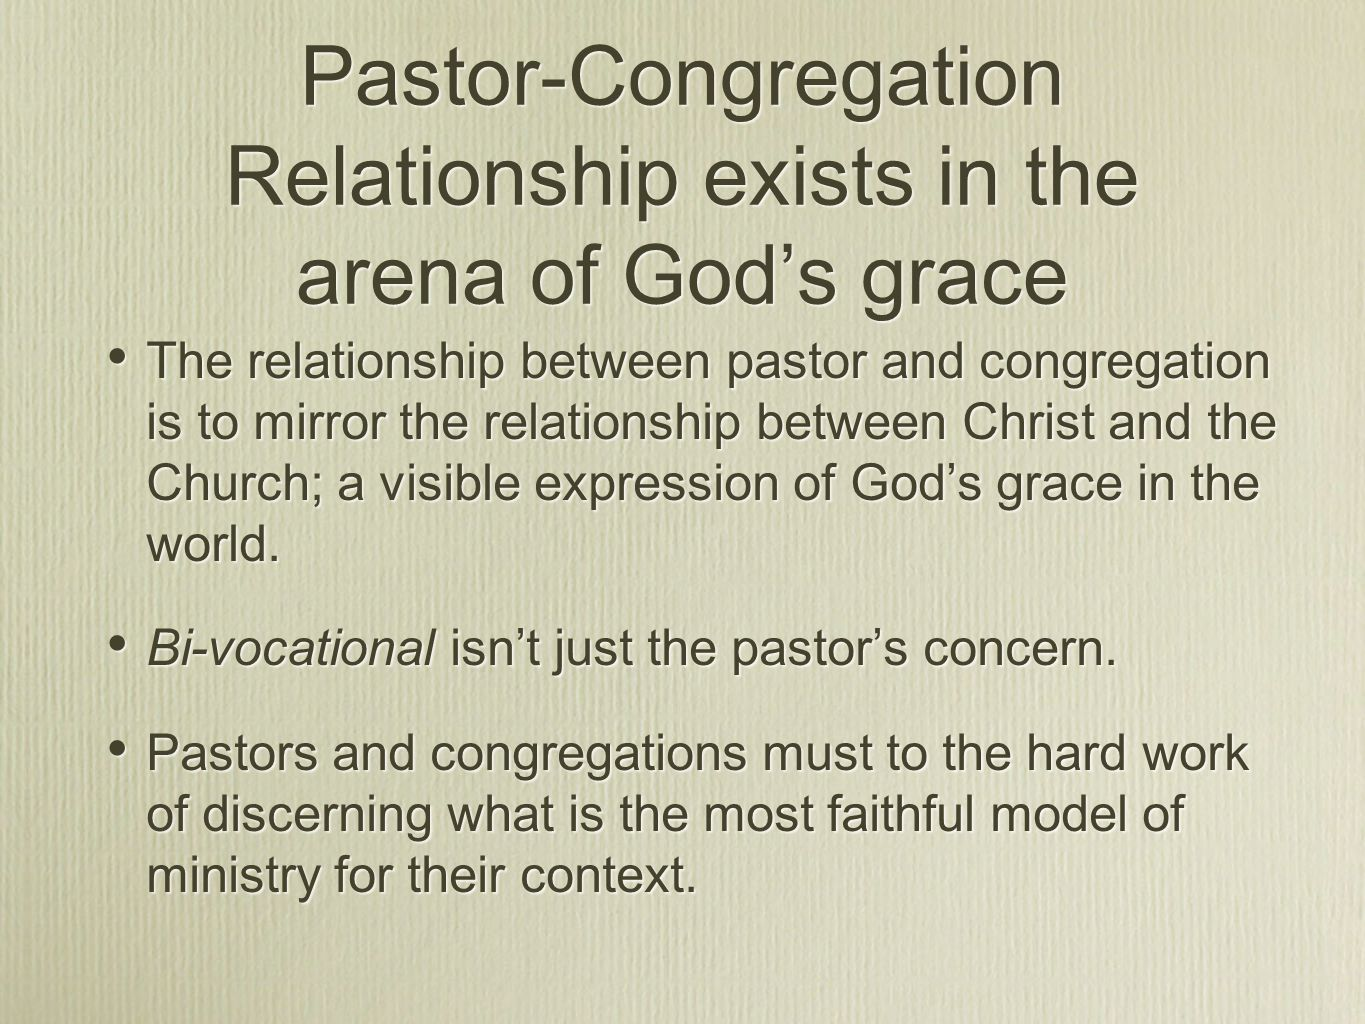 Pastor-Congregation Relationship exists in the arena of God's grace The relationship between pastor and congregation is to mirror the relationship between Christ and the Church; a visible expression of God's grace in the world.